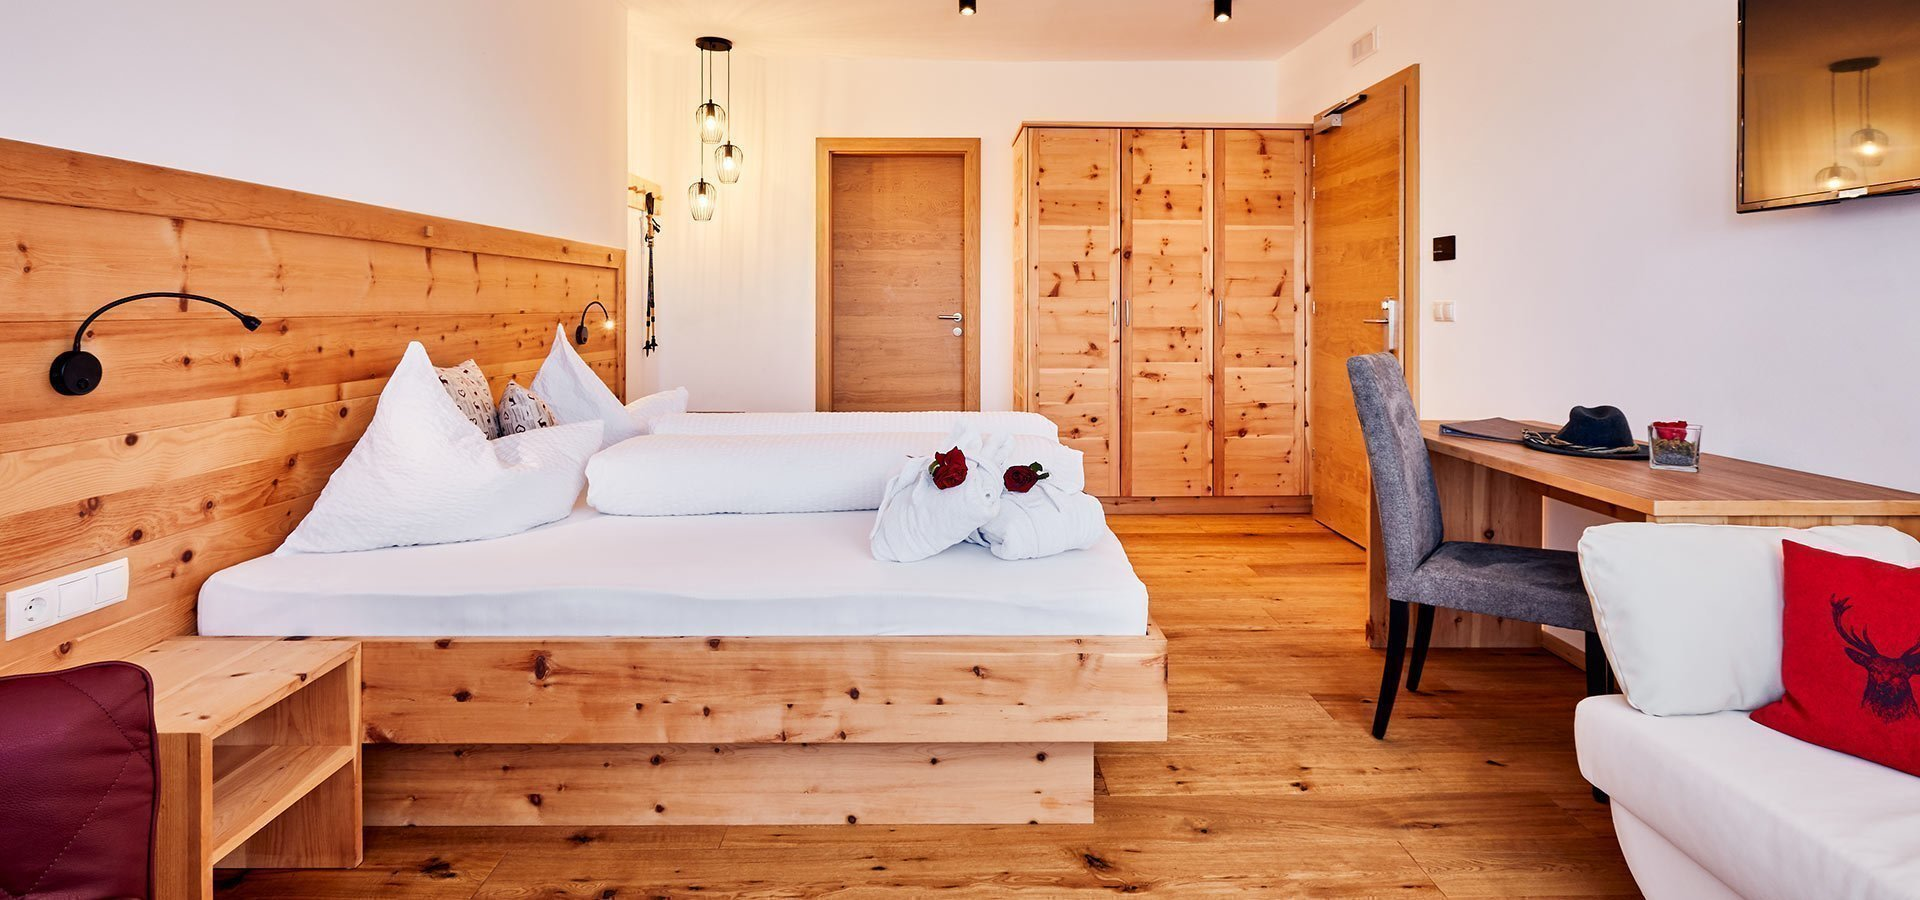 Accomodation Room Maranza in Val Isarco South Tyrol